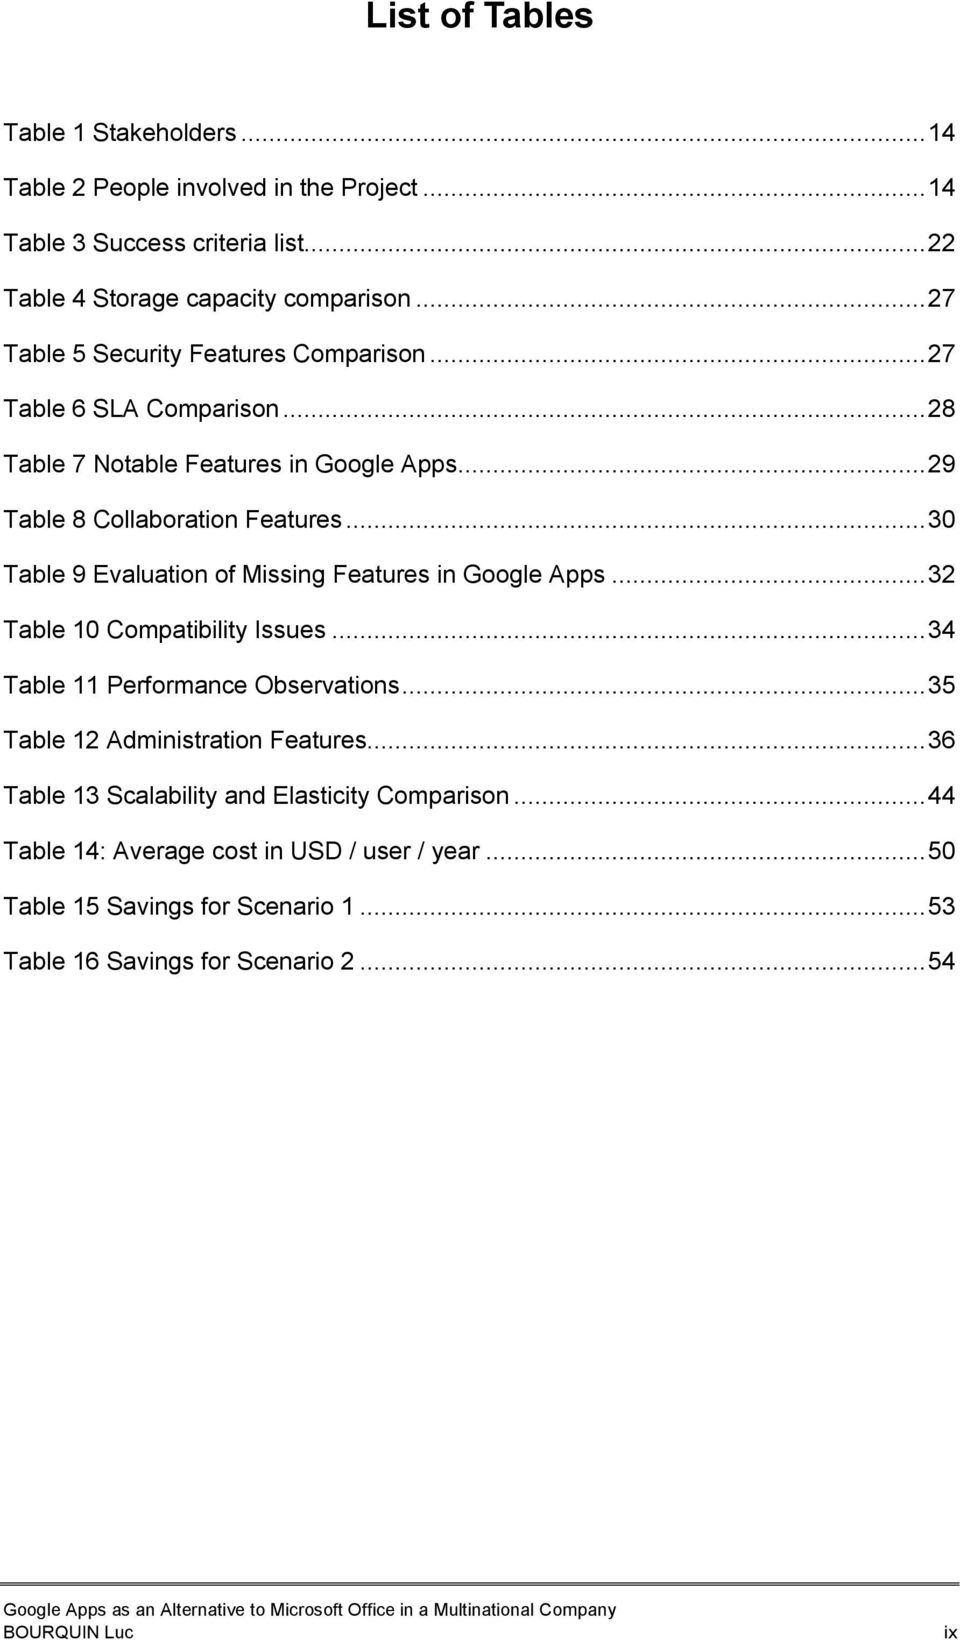 .. 30 Table 9 Evaluation of Missing Features in Google Apps... 32 Table 10 Compatibility Issues... 34 Table 11 Performance Observations... 35 Table 12 Administration Features.